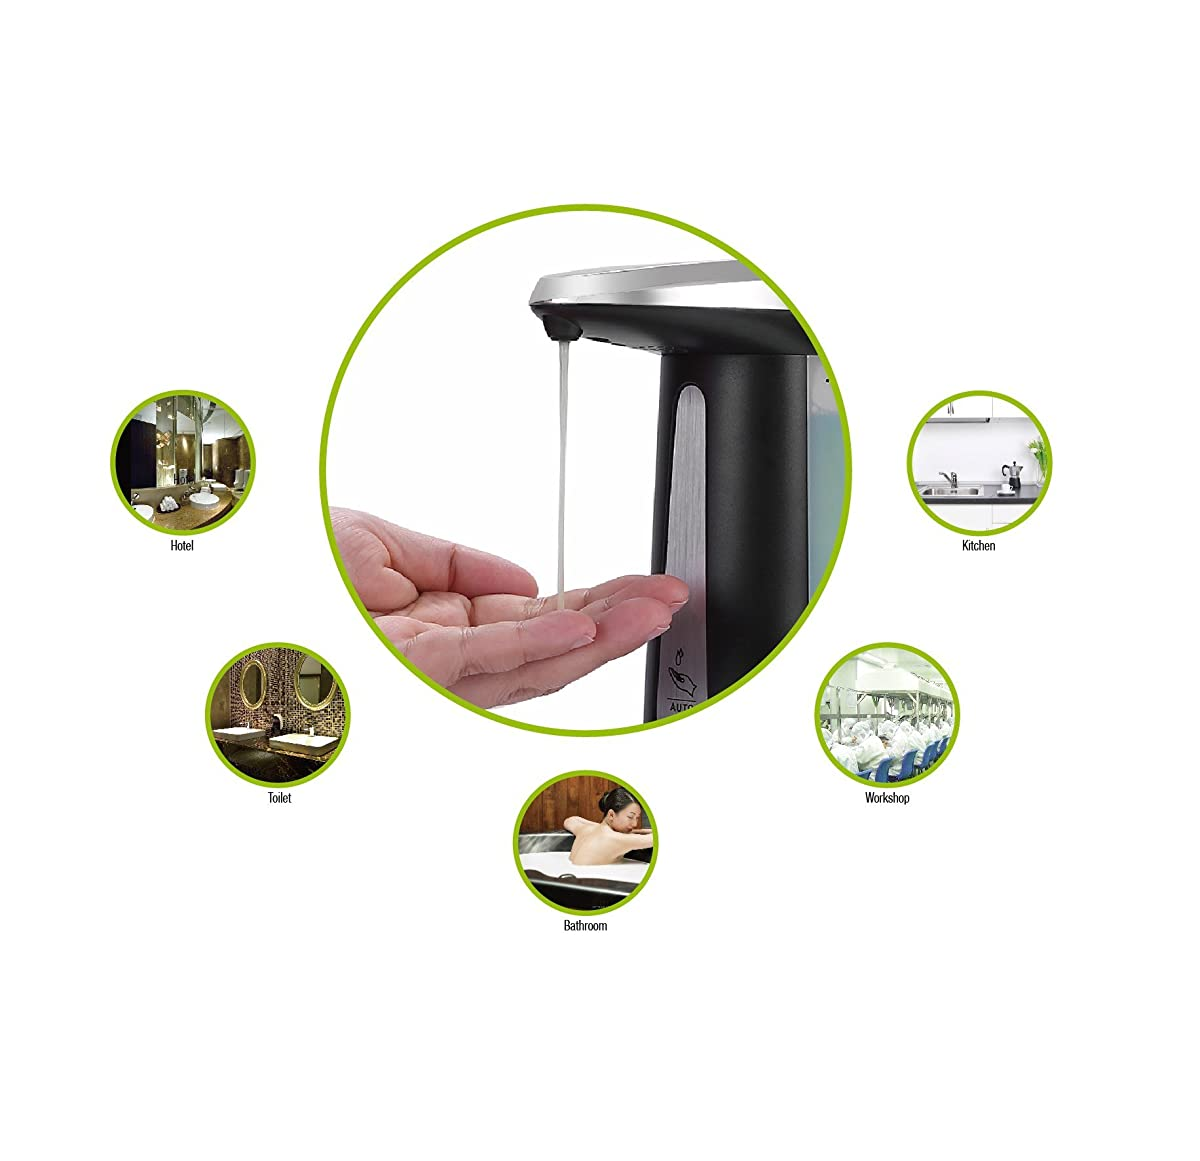 GooQee Automatic Touchless Countertop Liquid Soap Dispenser with IR Sensor - Remain Visible Window - Waterproof Base for Kitchen Bathroom Sanitizer Shampoo Lotion – Chime Optional (Black 12oz/340ml)